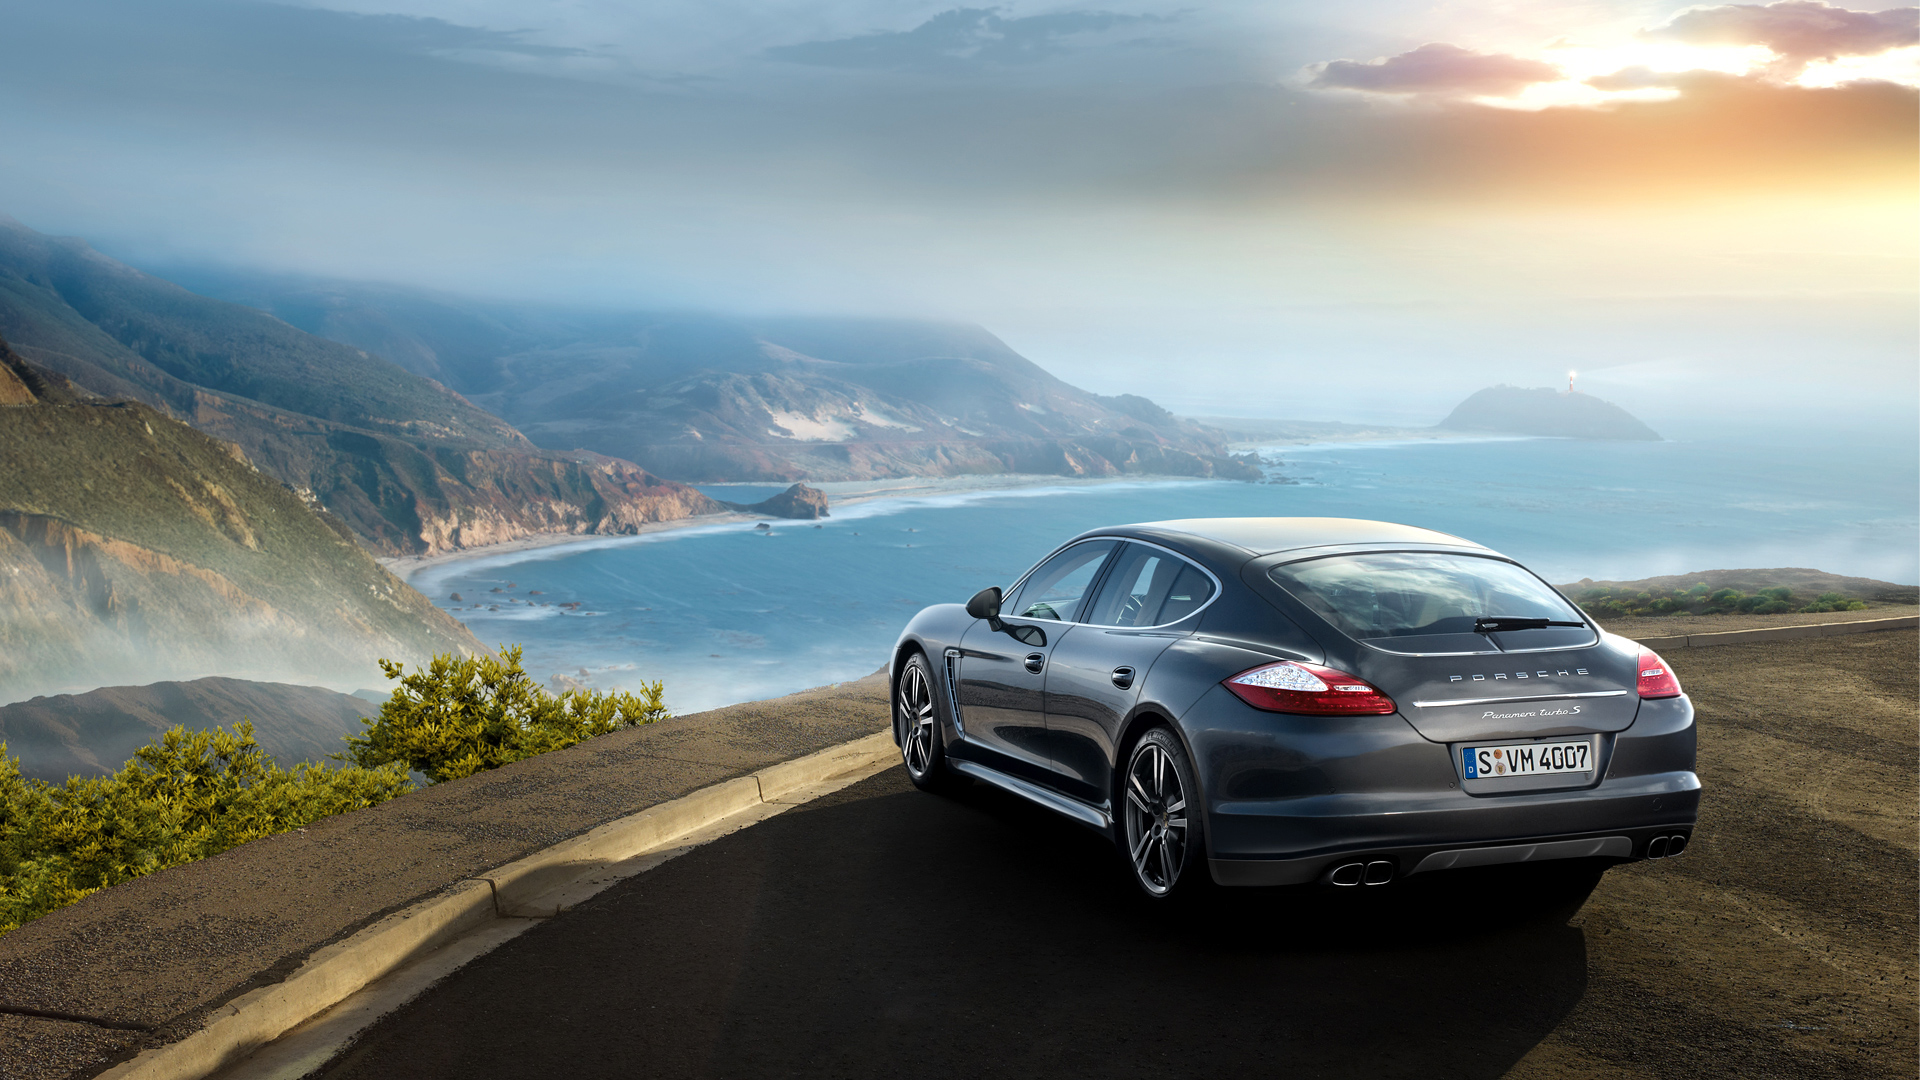 Porsche Panamera Turbo S Wallpapers HD Wallpapers 1920x1080